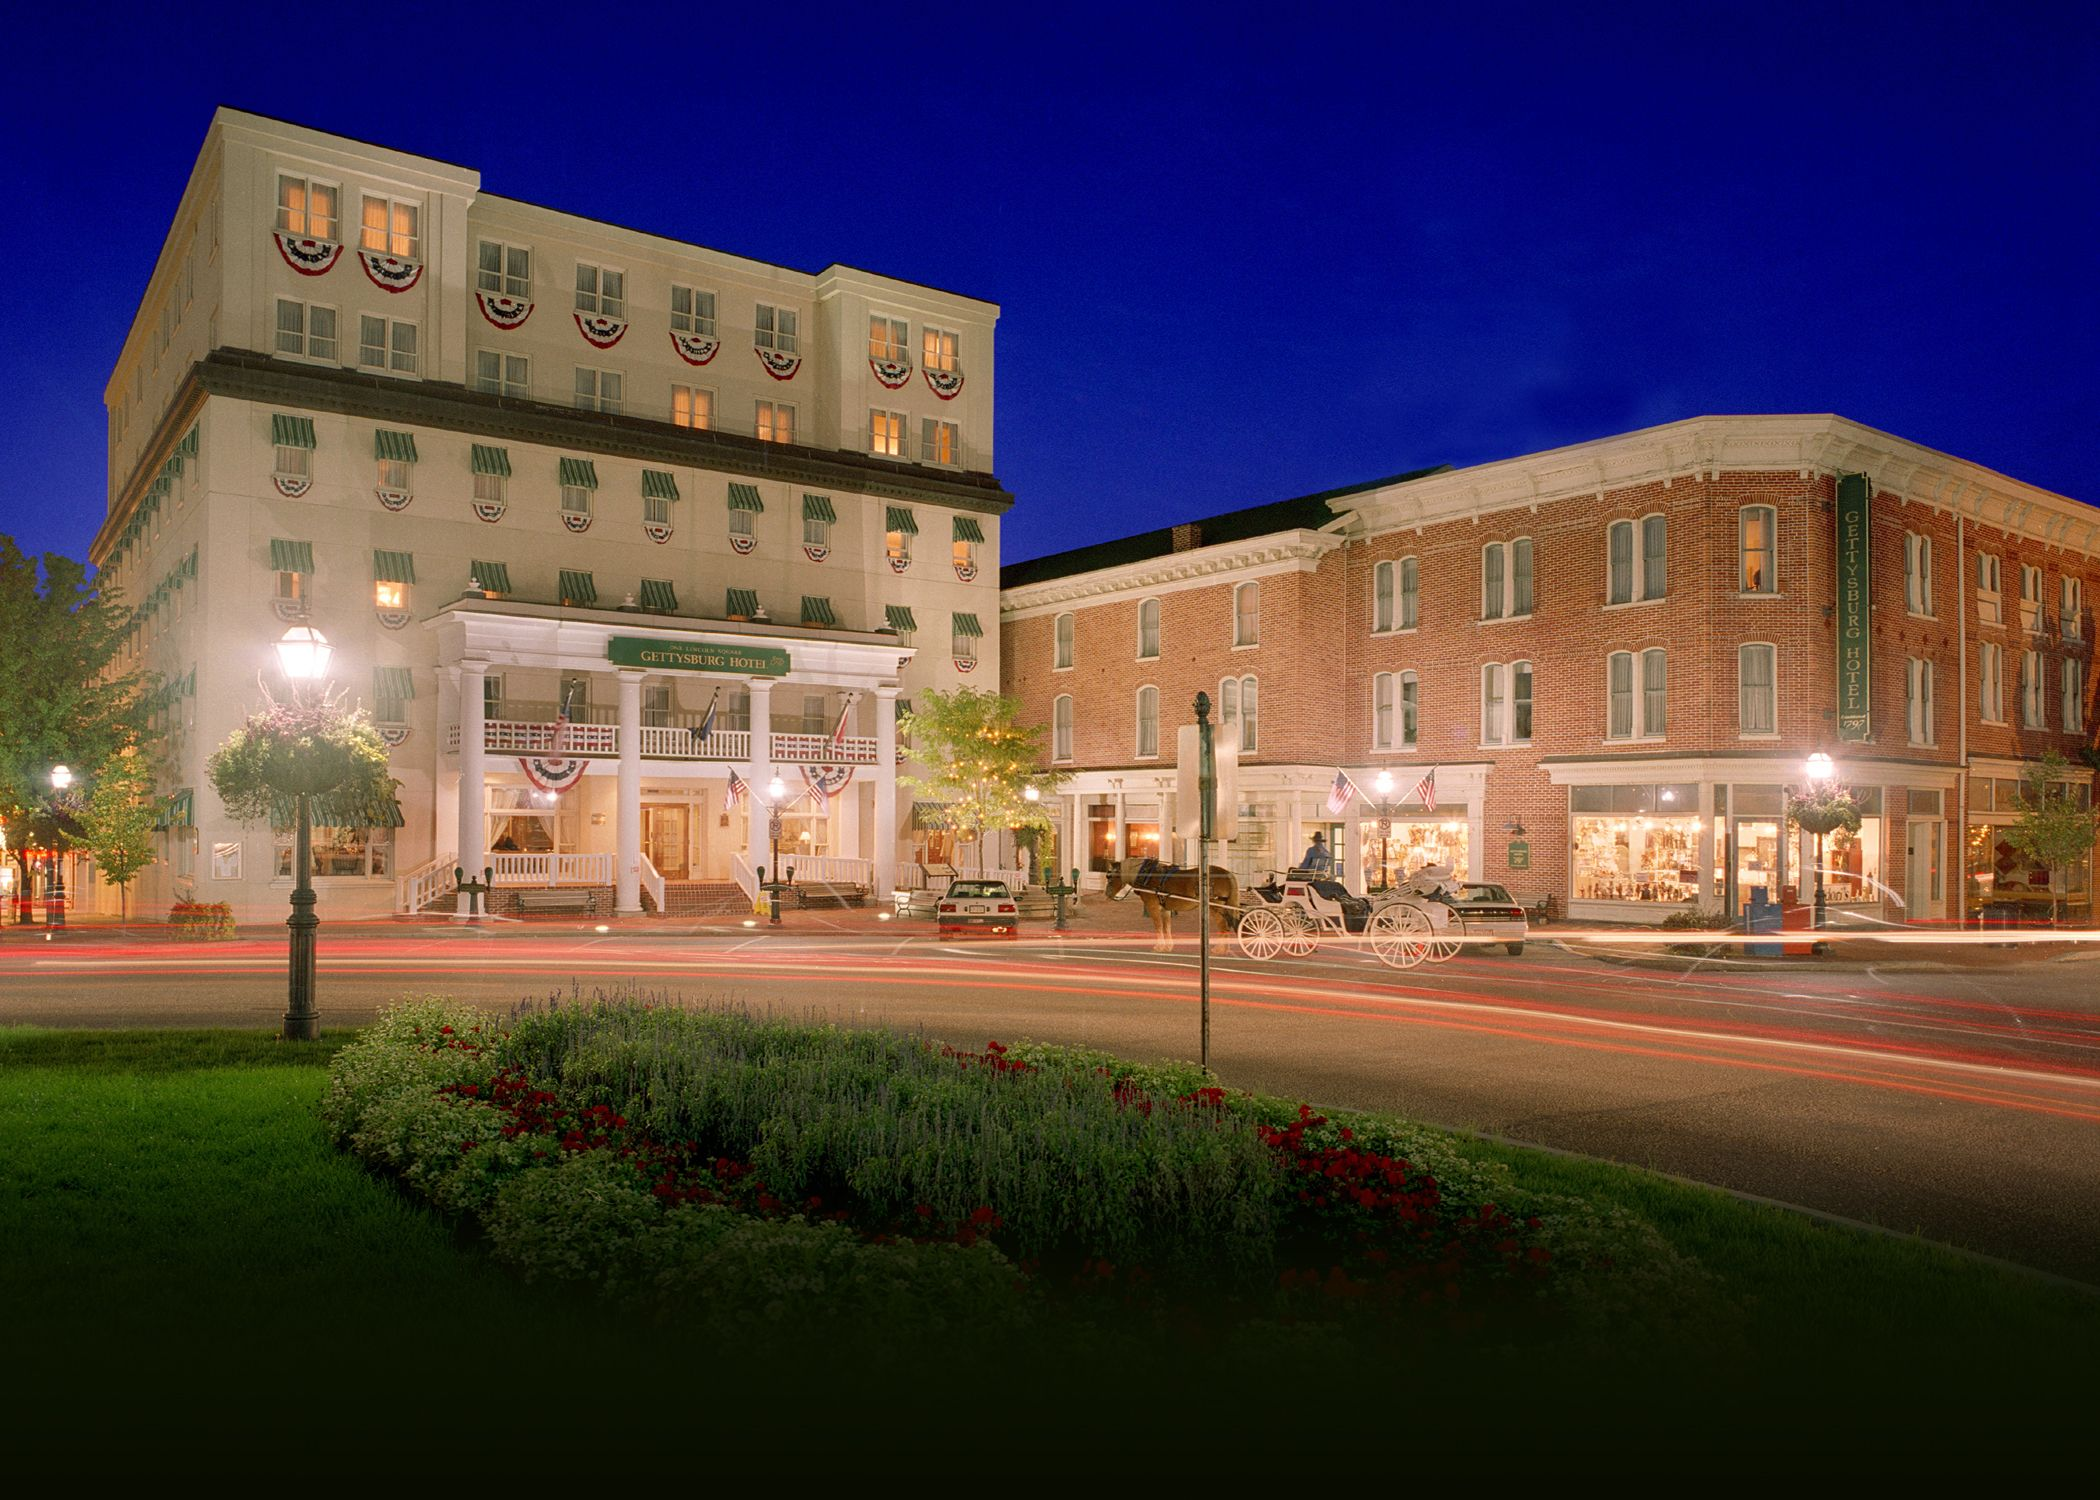 50 Of The Most Haunted Hotels In America